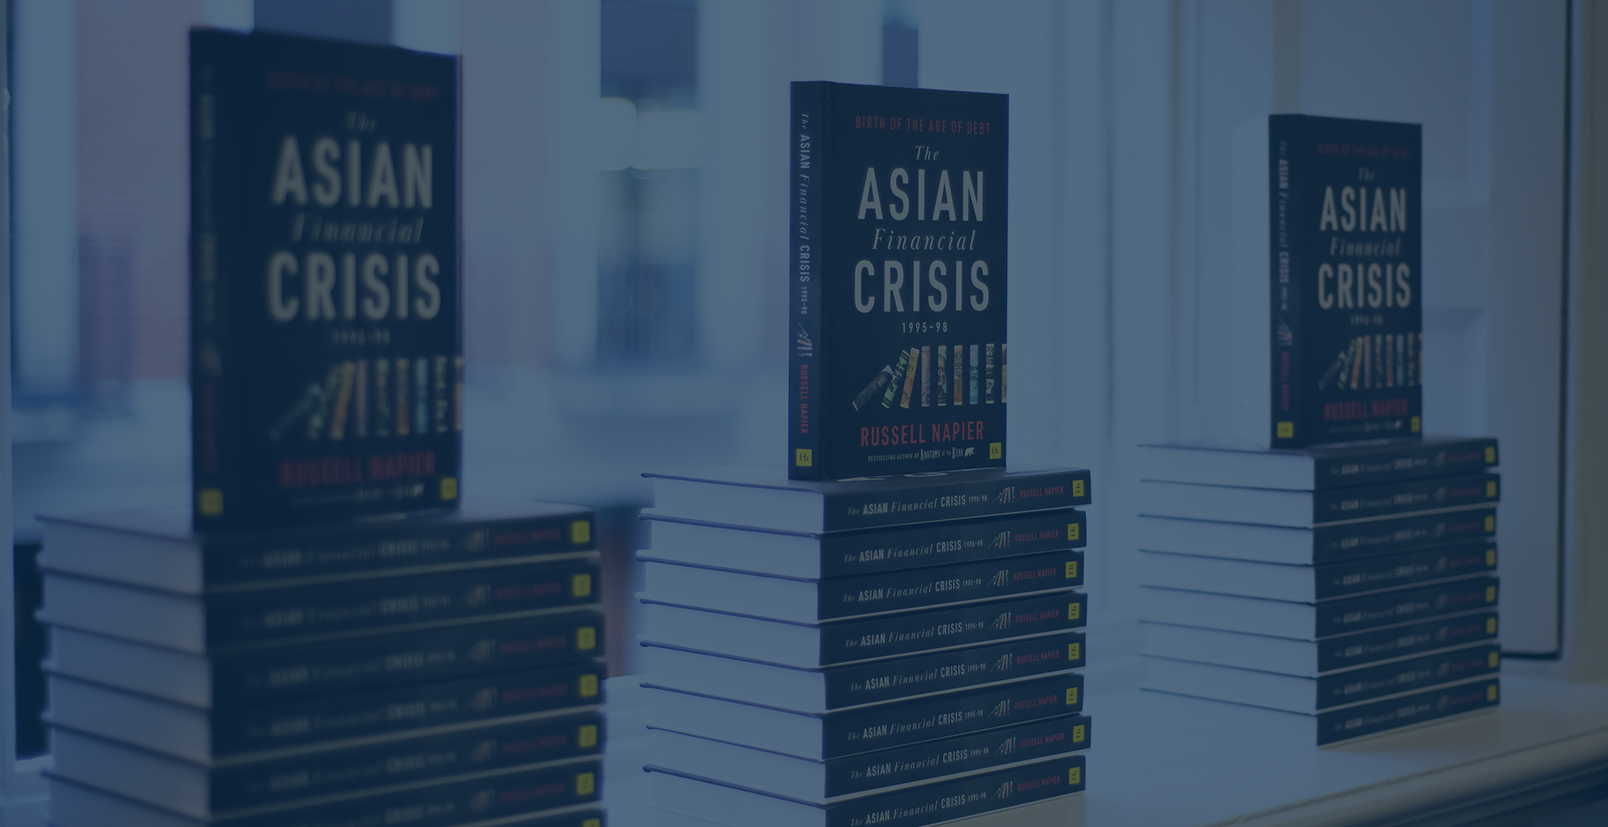 Russell Napier Book Launch – 'The Asian Financial Crisis 1995-1998: Birth of the Age of Debt'